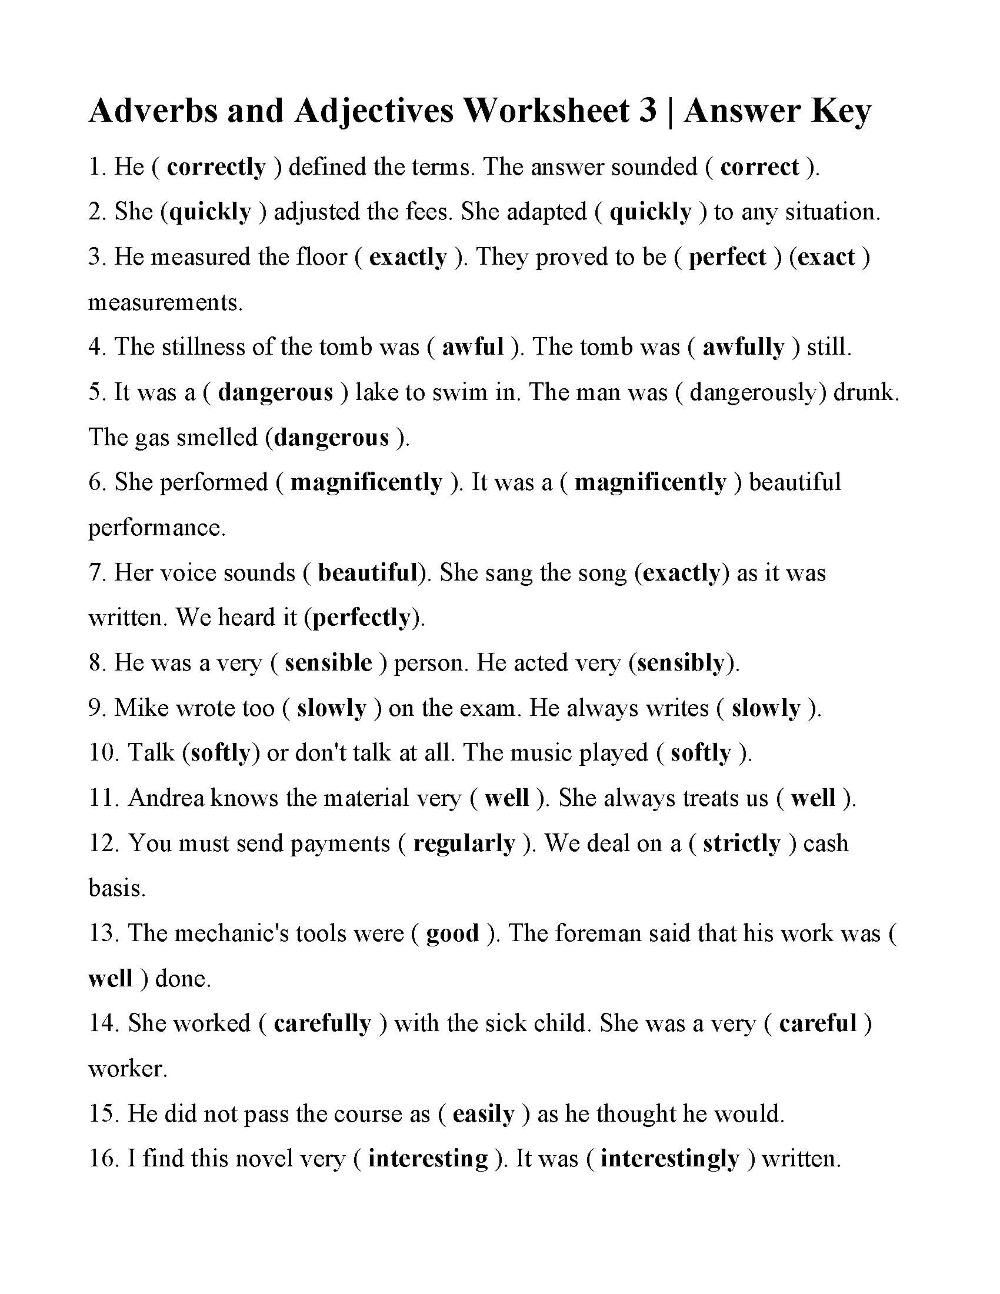 Pin By Chidambaram Pillai On Worksheets For Grade 3 In 2020 Adjective Worksheet Grammar Worksheets Good Grammar The worksheet topics below will help your students begin to better understand the skills that are found at that the third grade level. pinterest